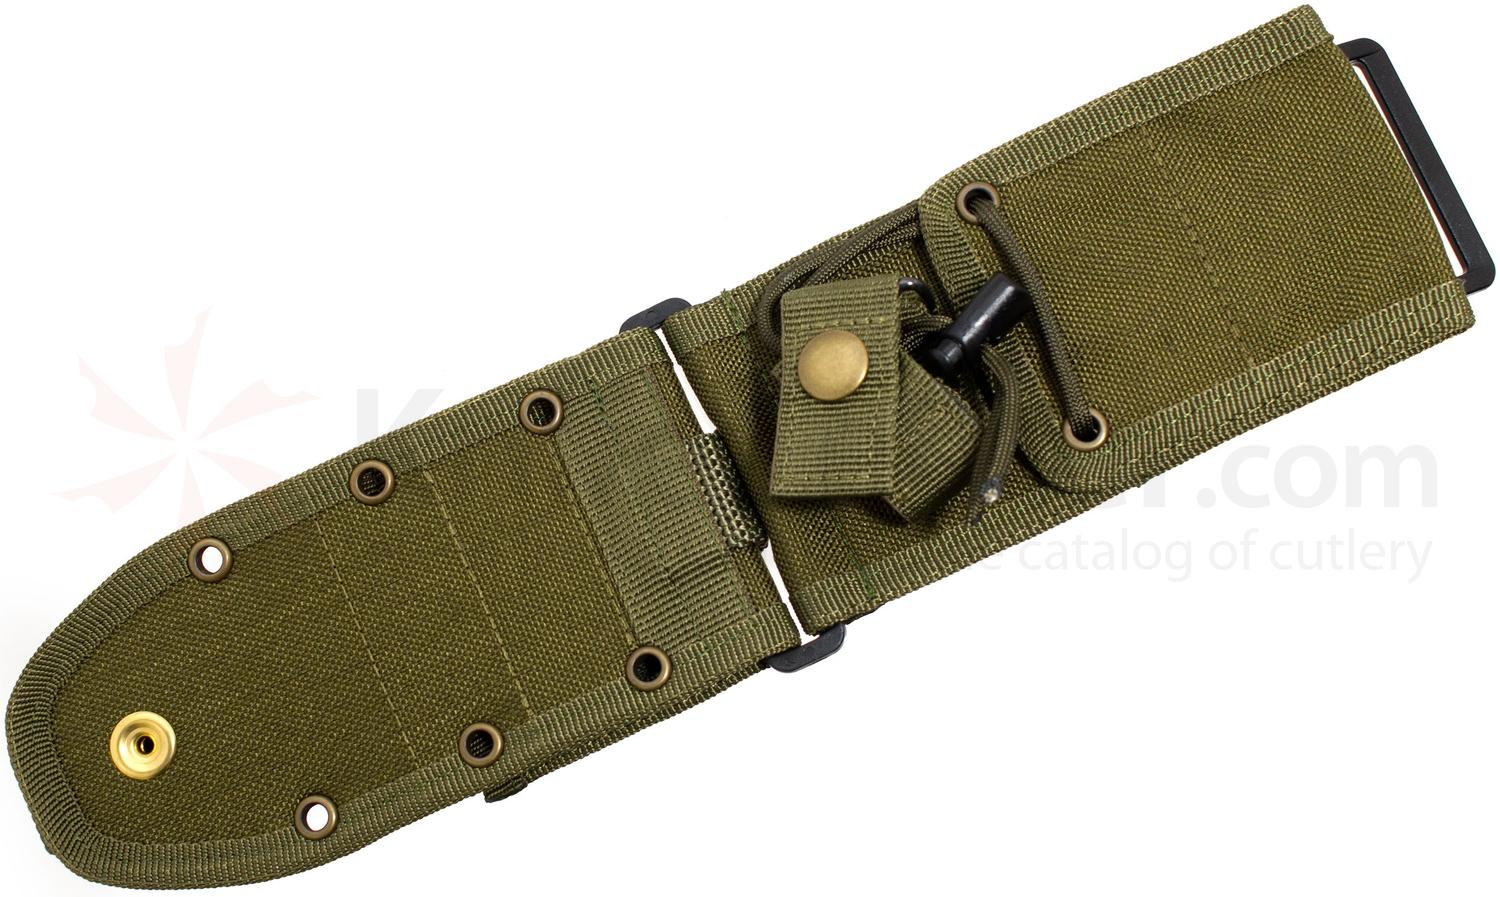 ESEE Knives ESEE-52-MB-OD MOLLE Back Sheath for ESEE-5, ESEE-6, Laser Strike, Olive Drab